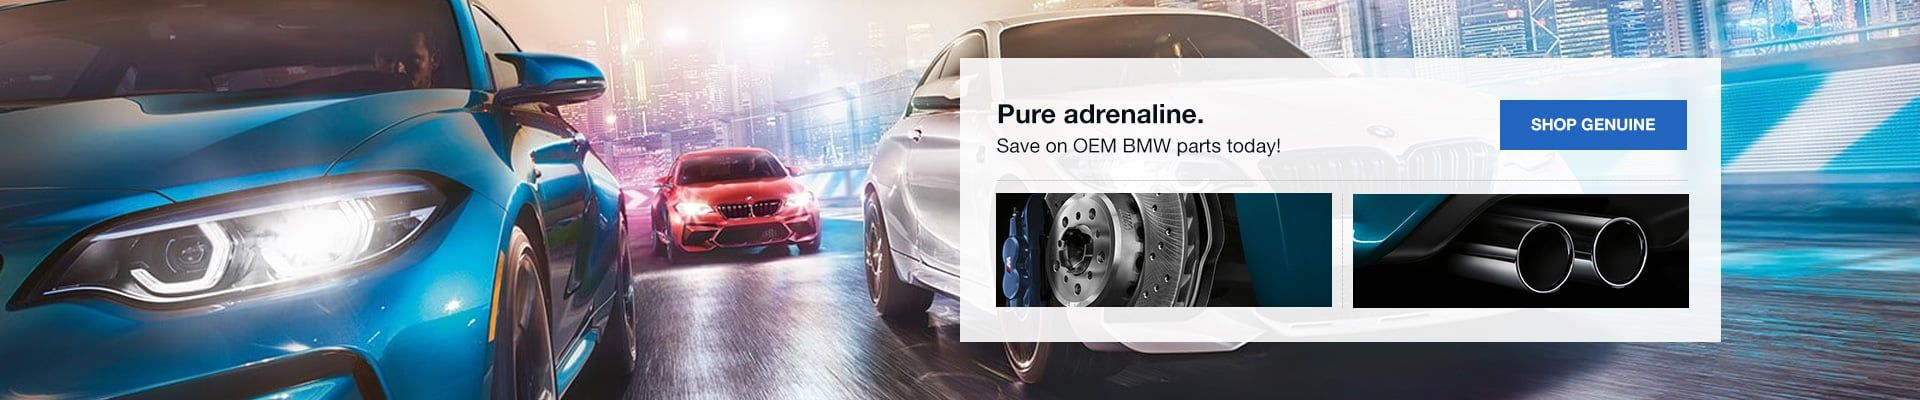 Top Rated Factory Bmw Parts Online Retailer Bmw Parts Direct